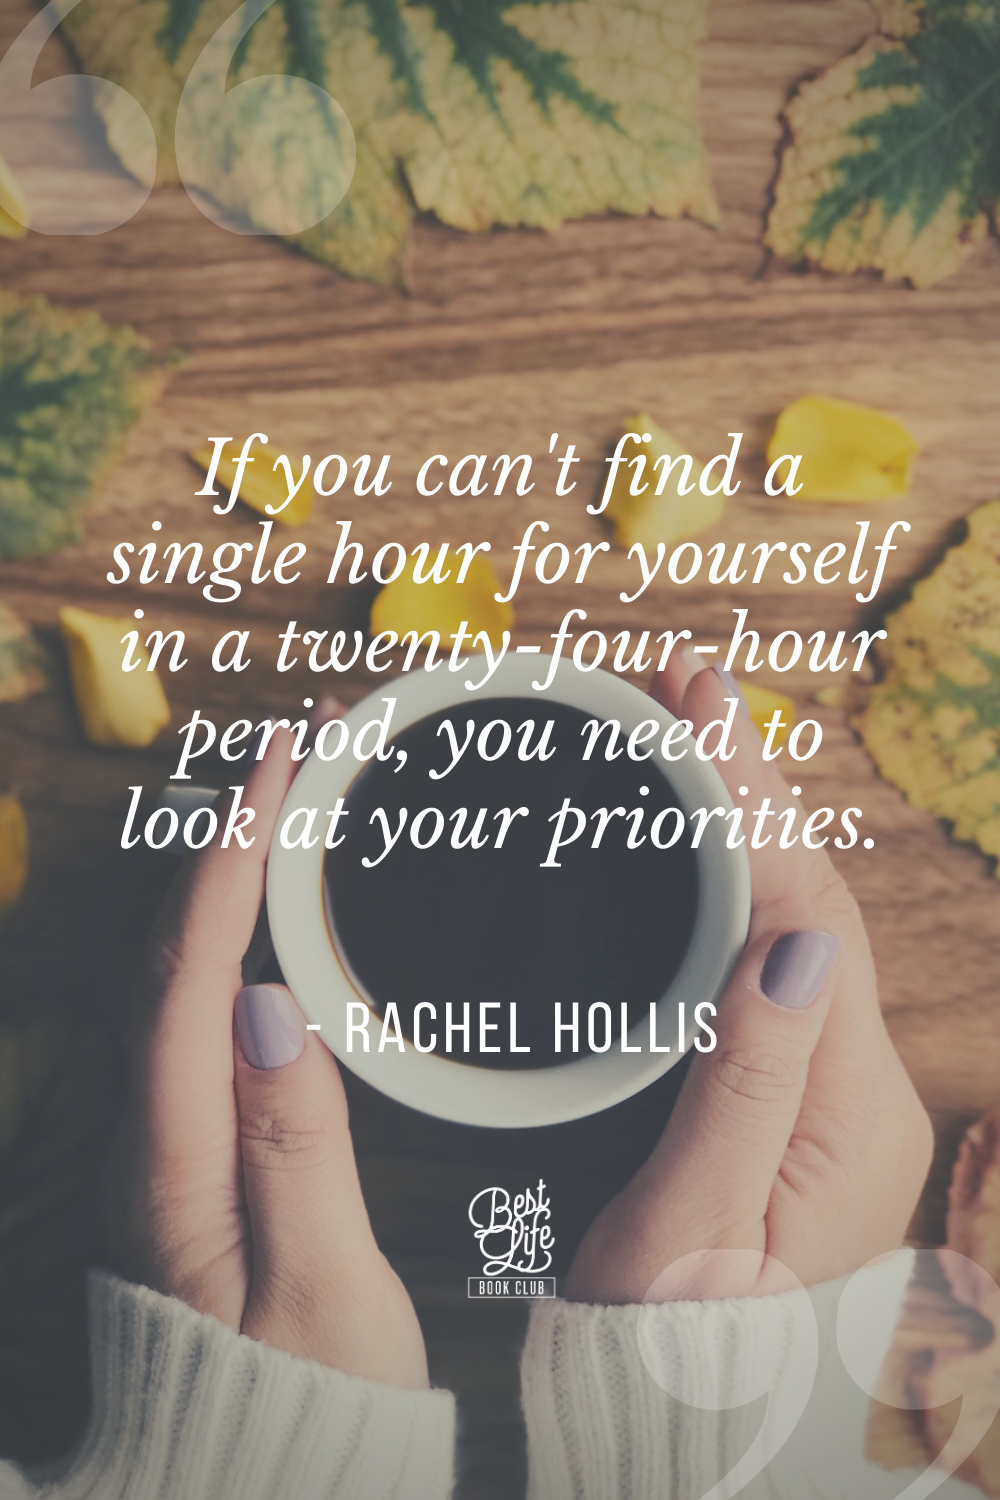 Top 5 Rachel Hollis Quotes from Girl, Stop Apologizing | Best Life Book Club